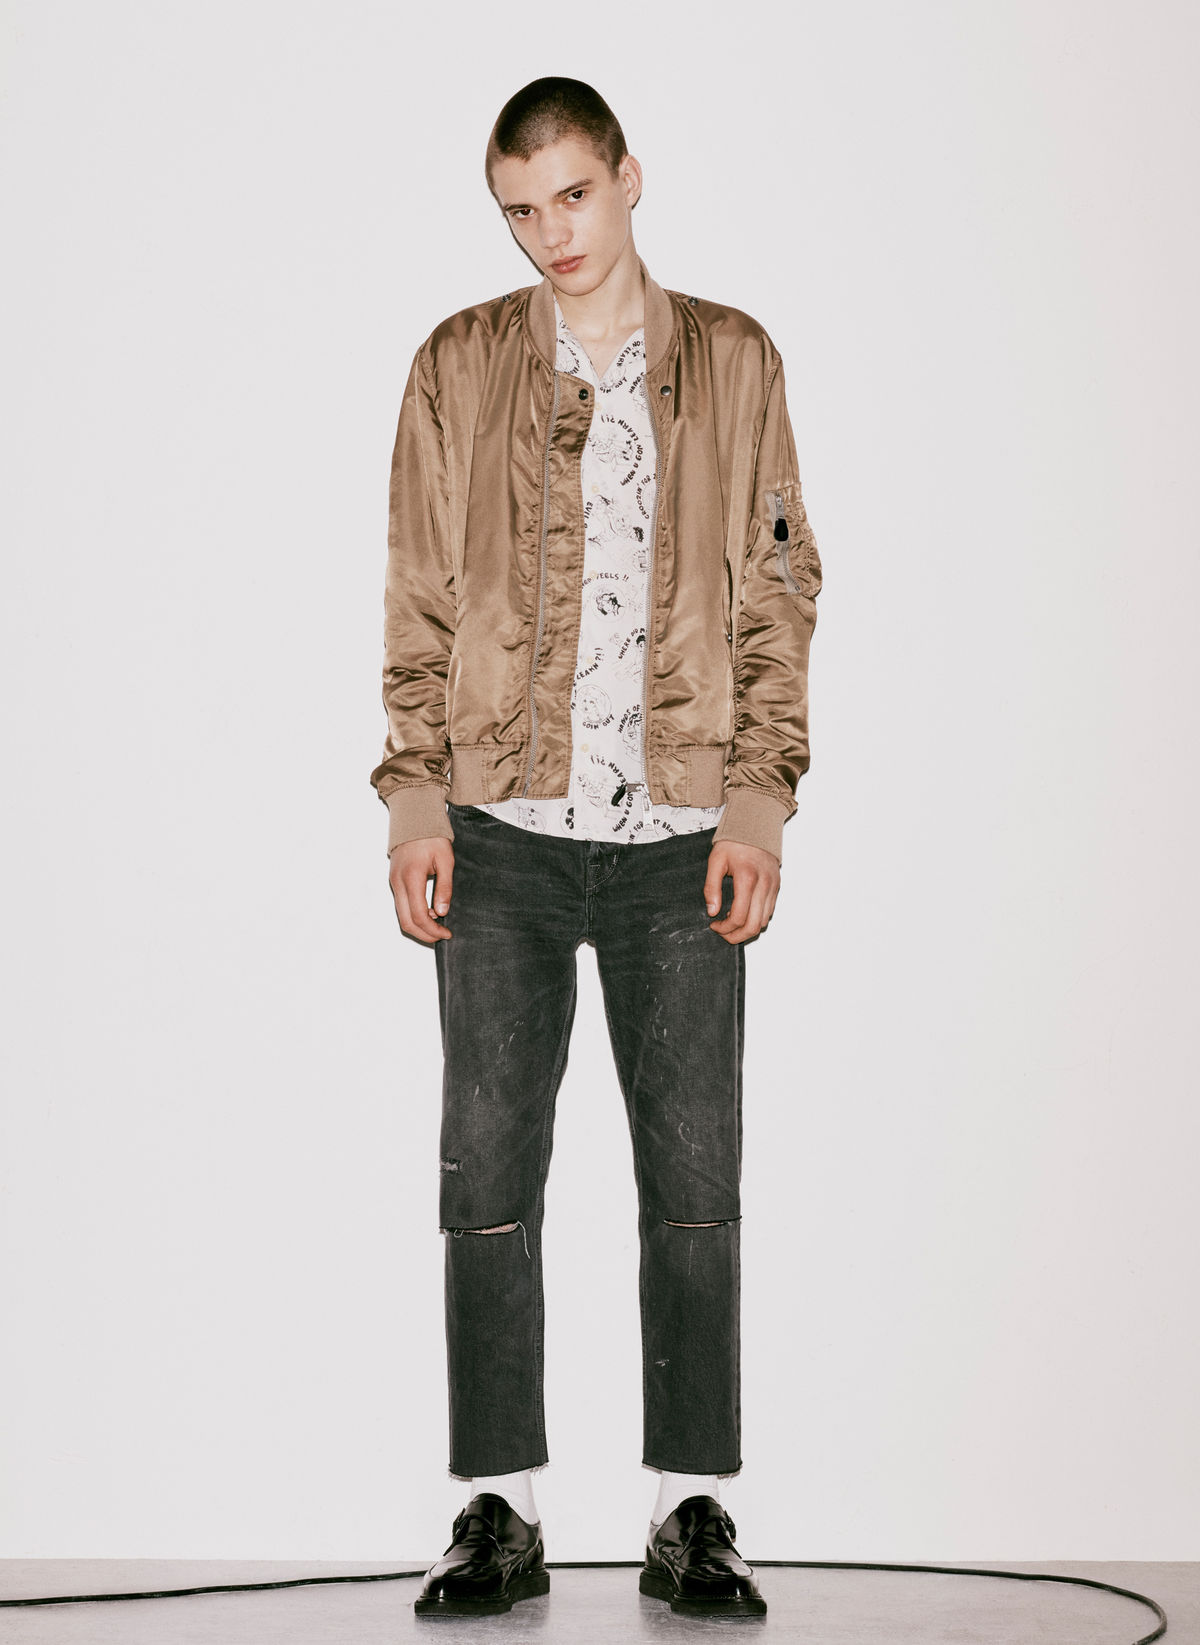 Lookbook image of a man standing in front of a plain white background and wearing an outfit option from our August new arrivals.